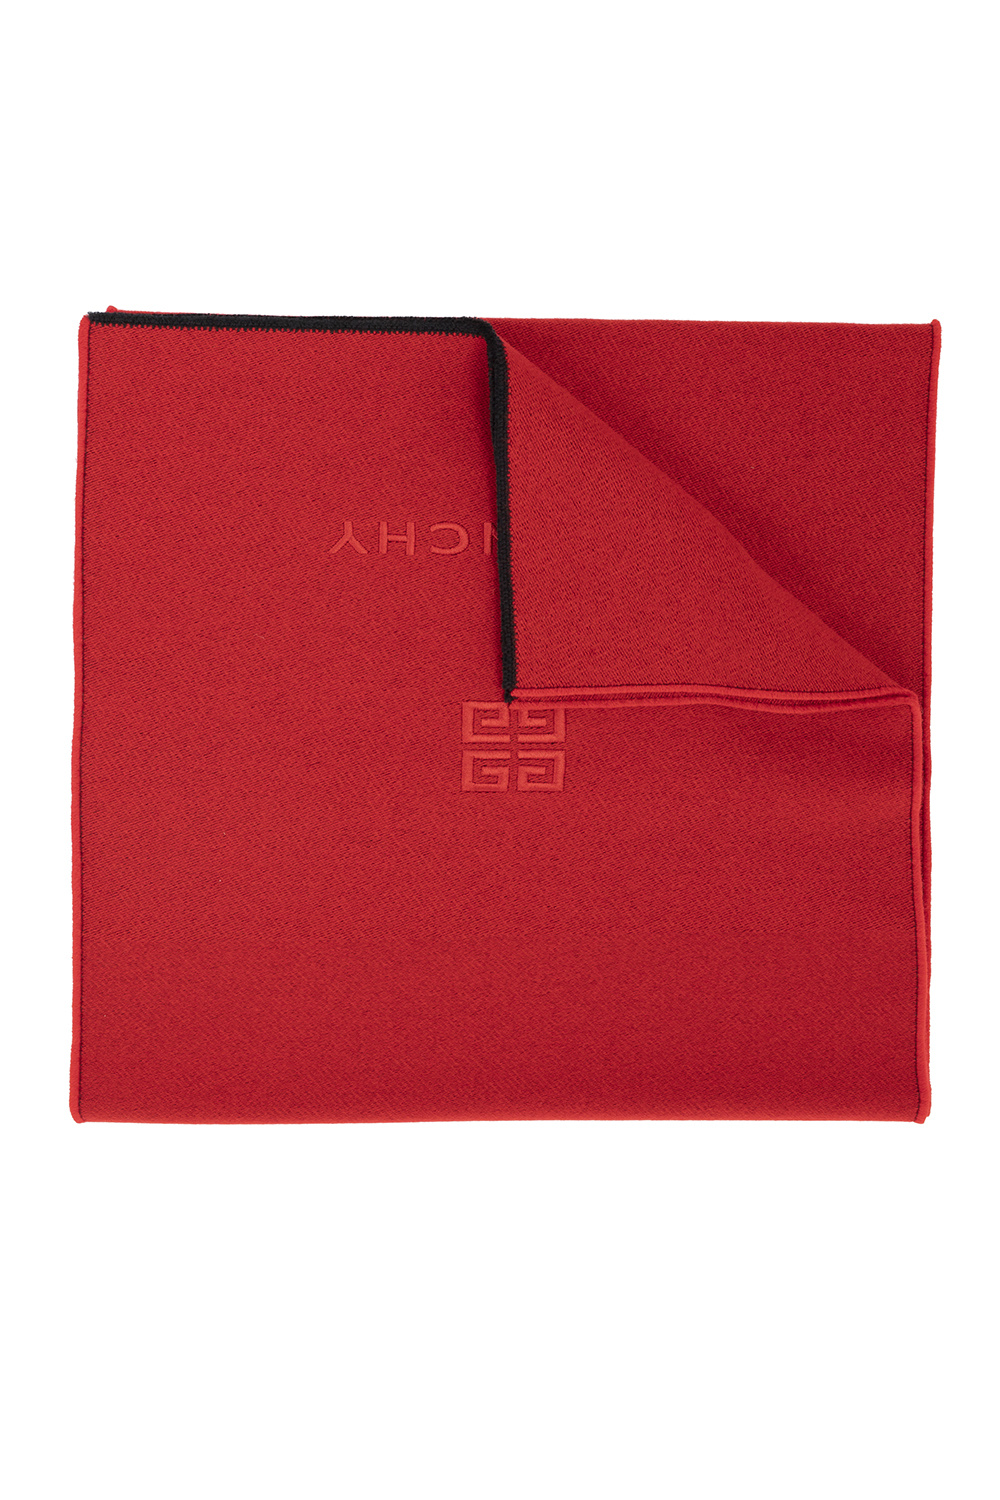 Givenchy Scarf with logo